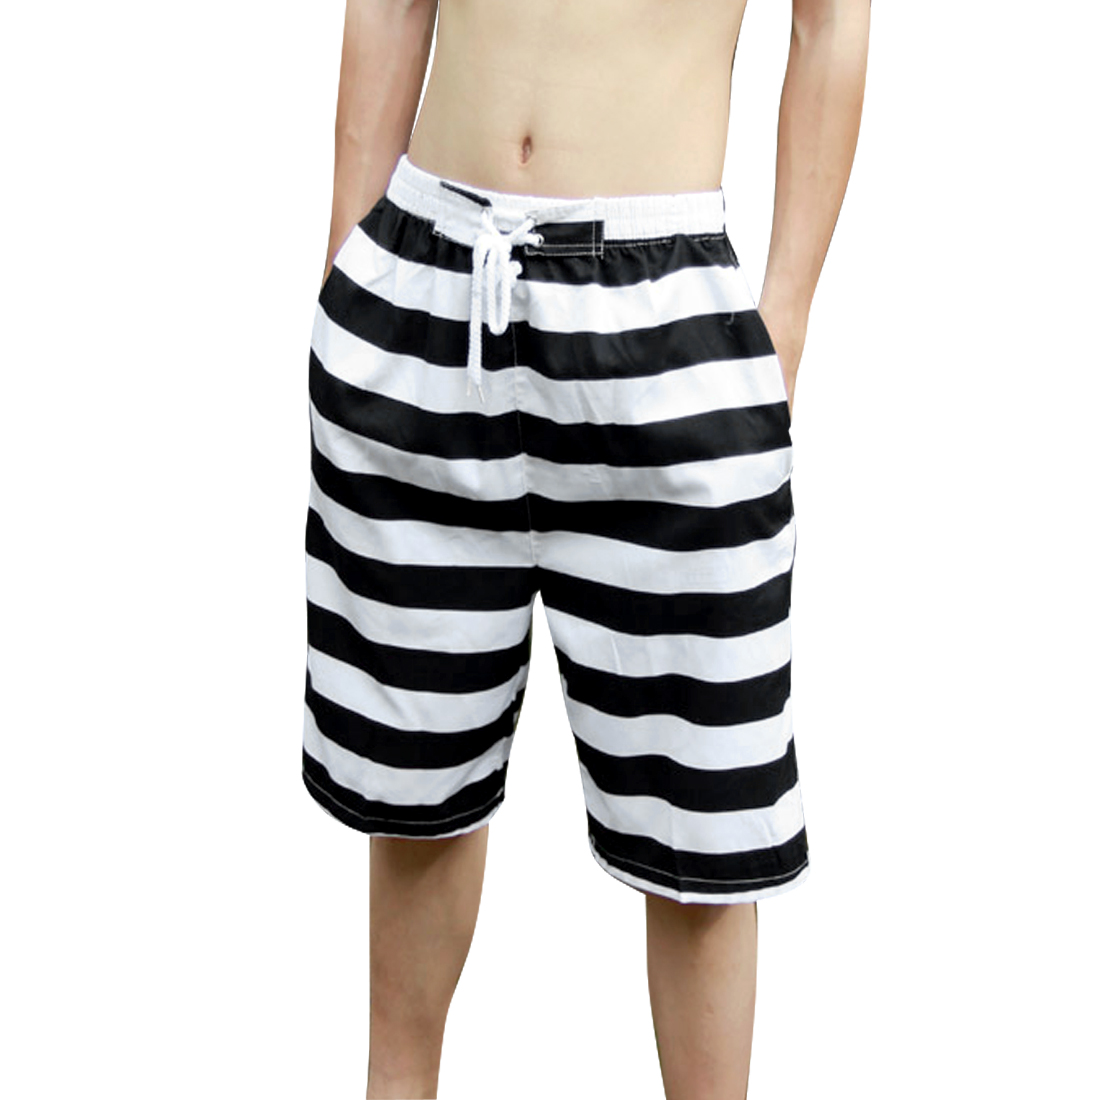 Men Elastic Waist Stripes Pattern Drawstring Style Fashion Shorts Black W33